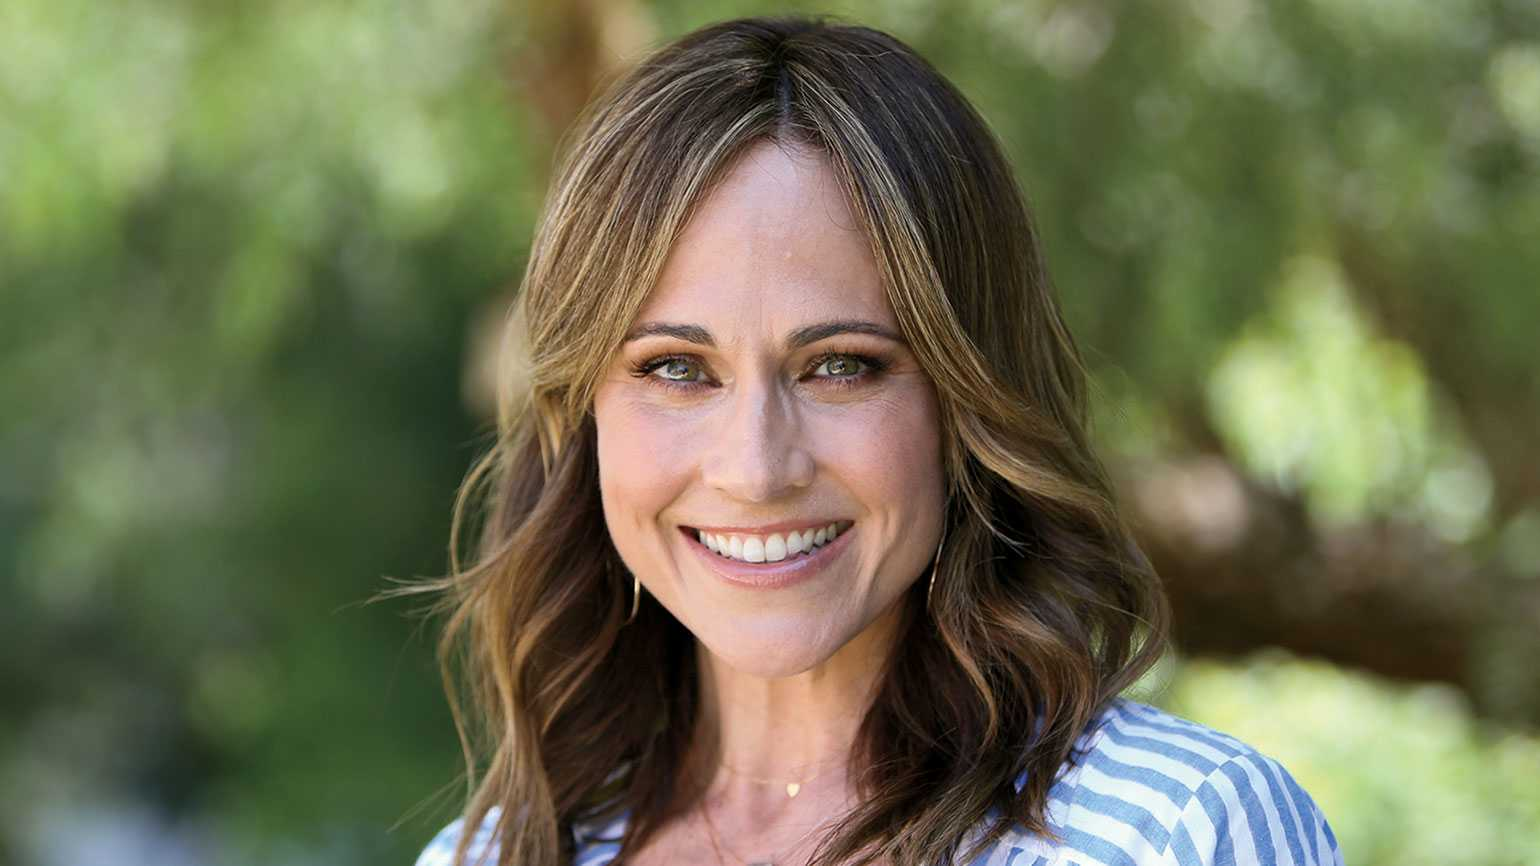 Actress Nikki DeLoach; photo: Paul Archuleta/Getty Images